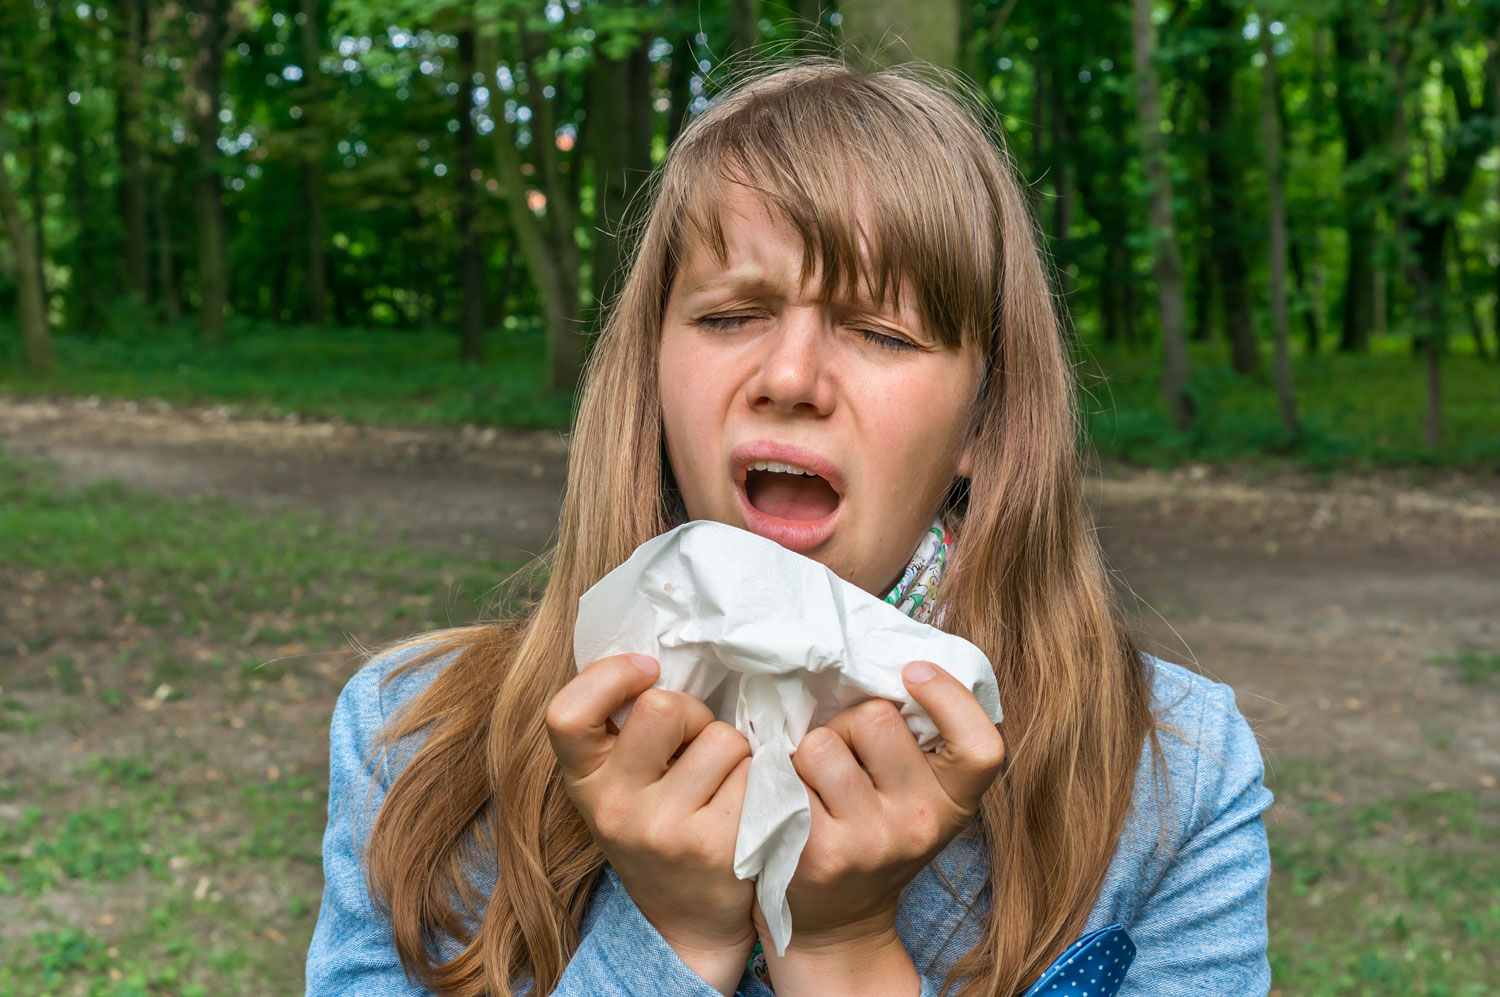 Woman-with-flu-or-allergy-symptoms-in-park